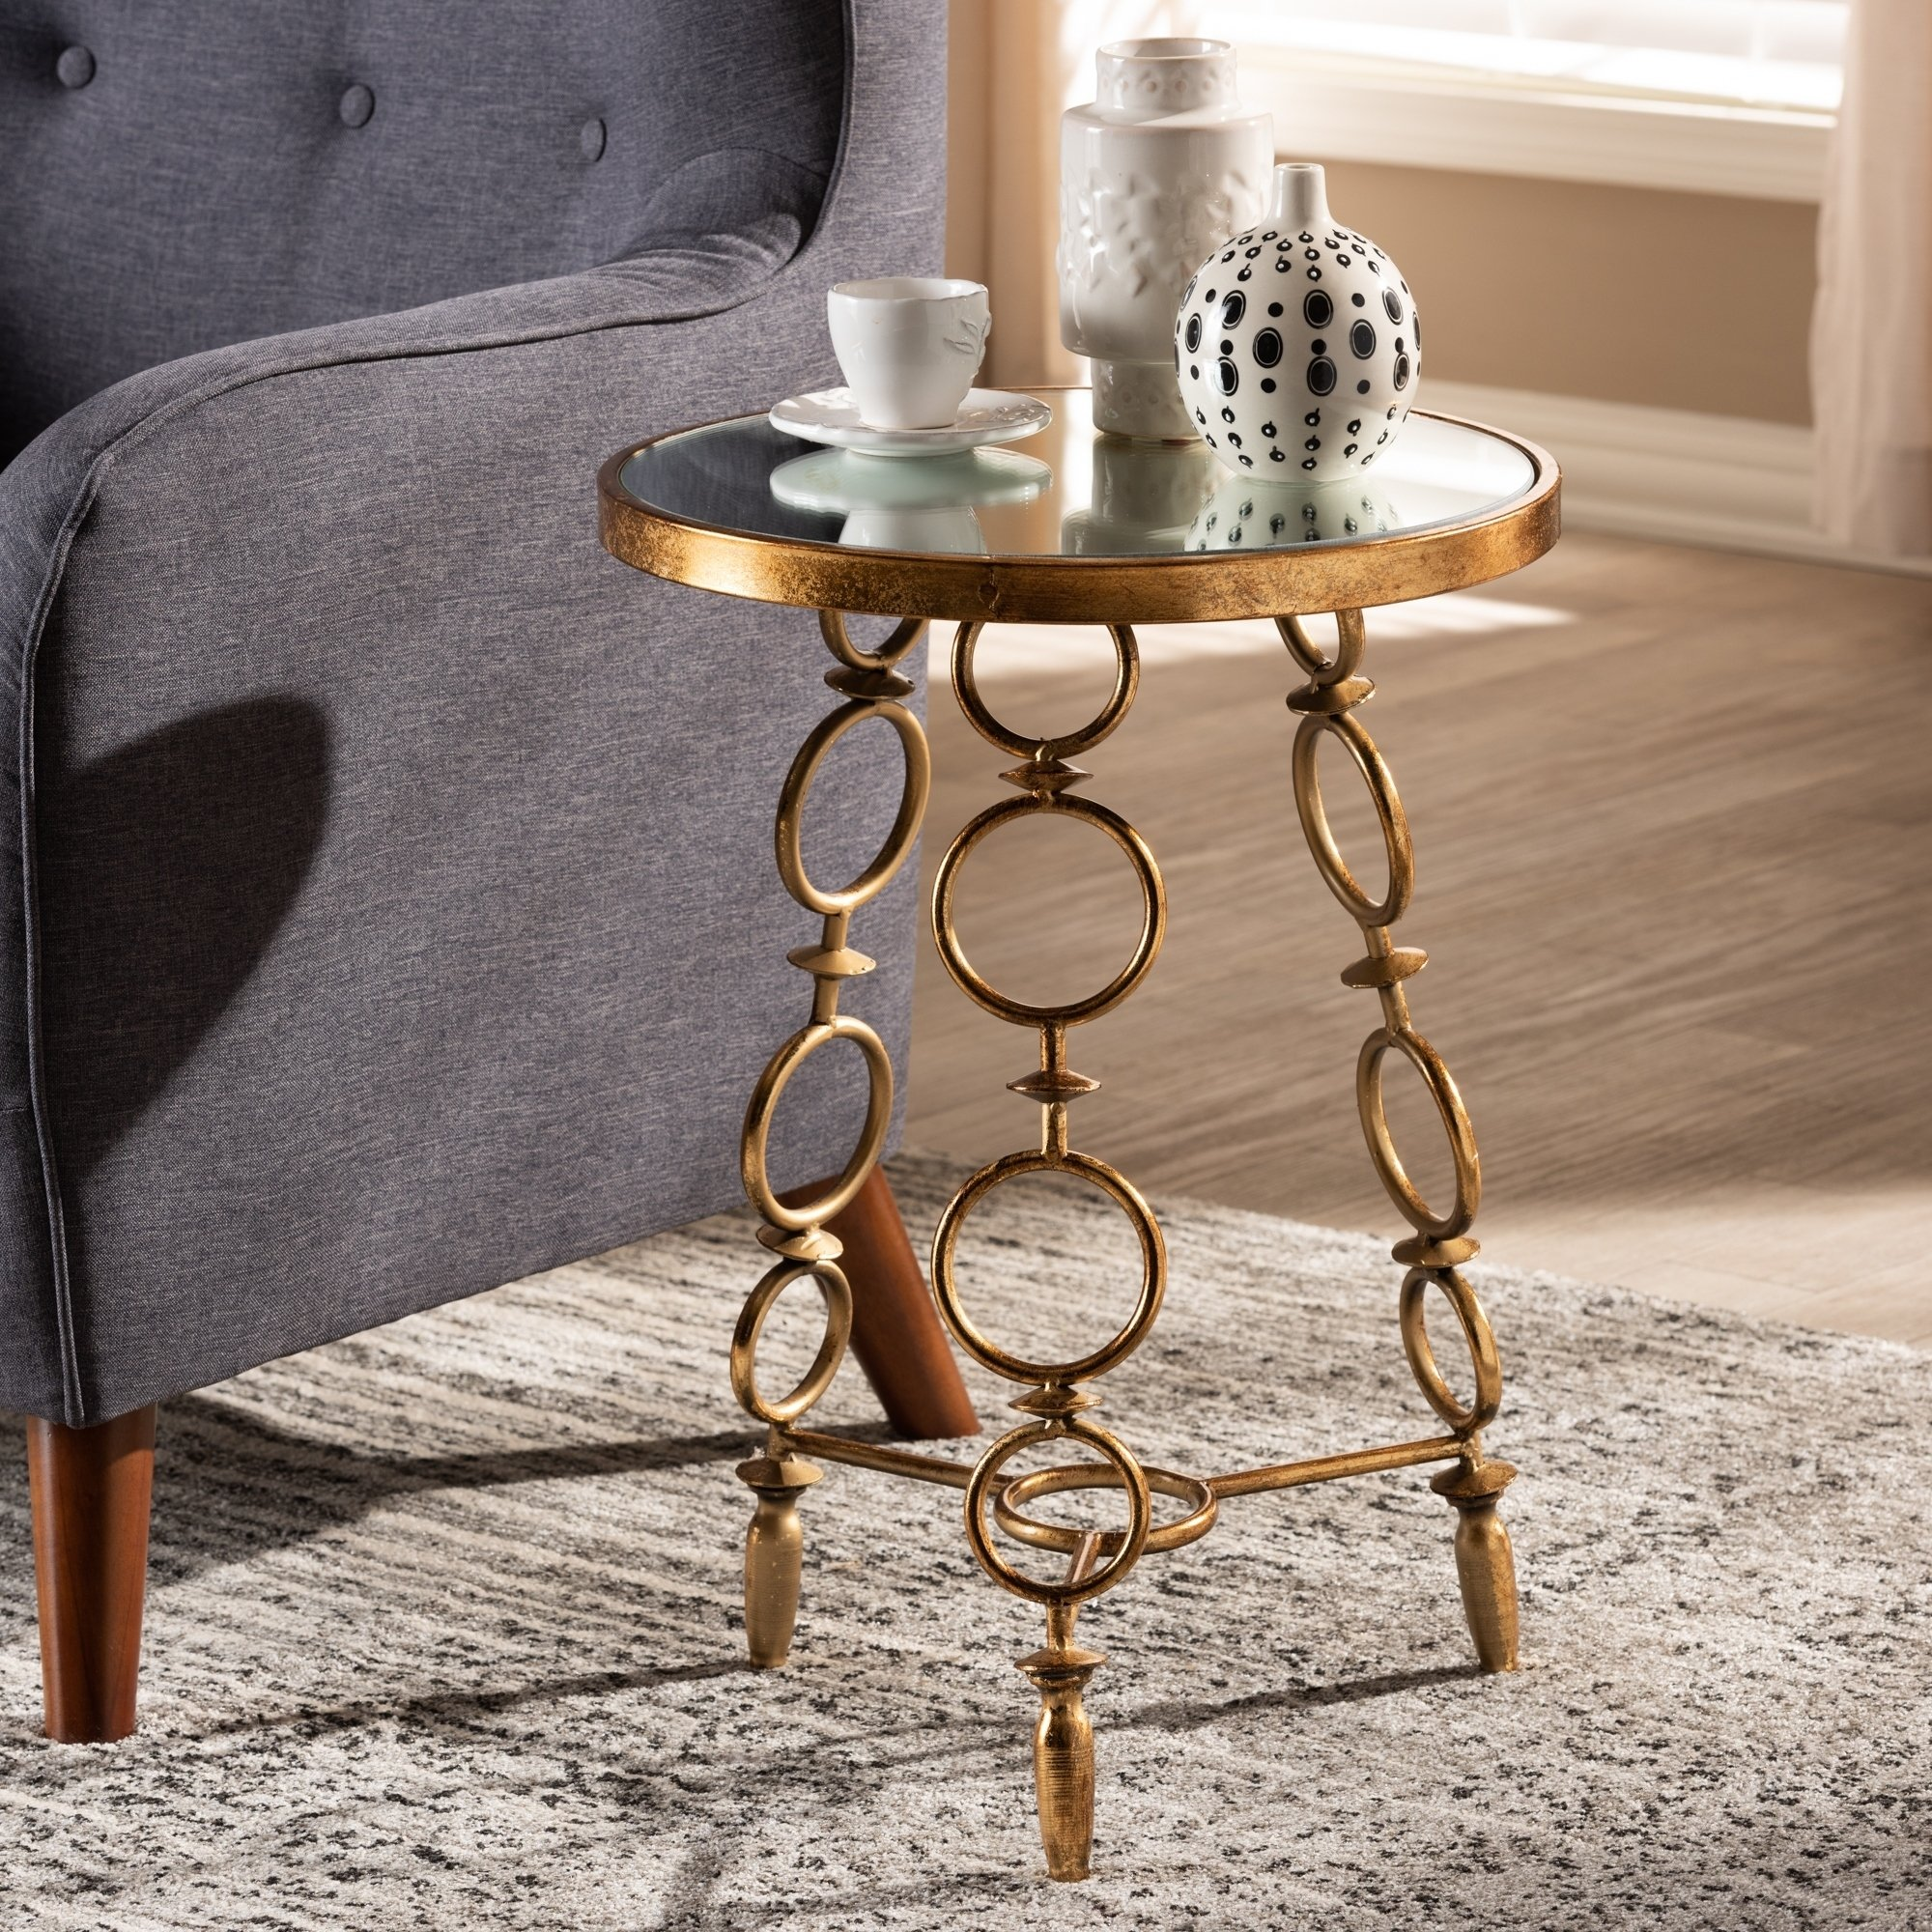 contemporary antique gold accent table free metal eyelet shipping today patio beer cooler bamboo furniture large barn door keter ice ashley leather couch half moon console oval